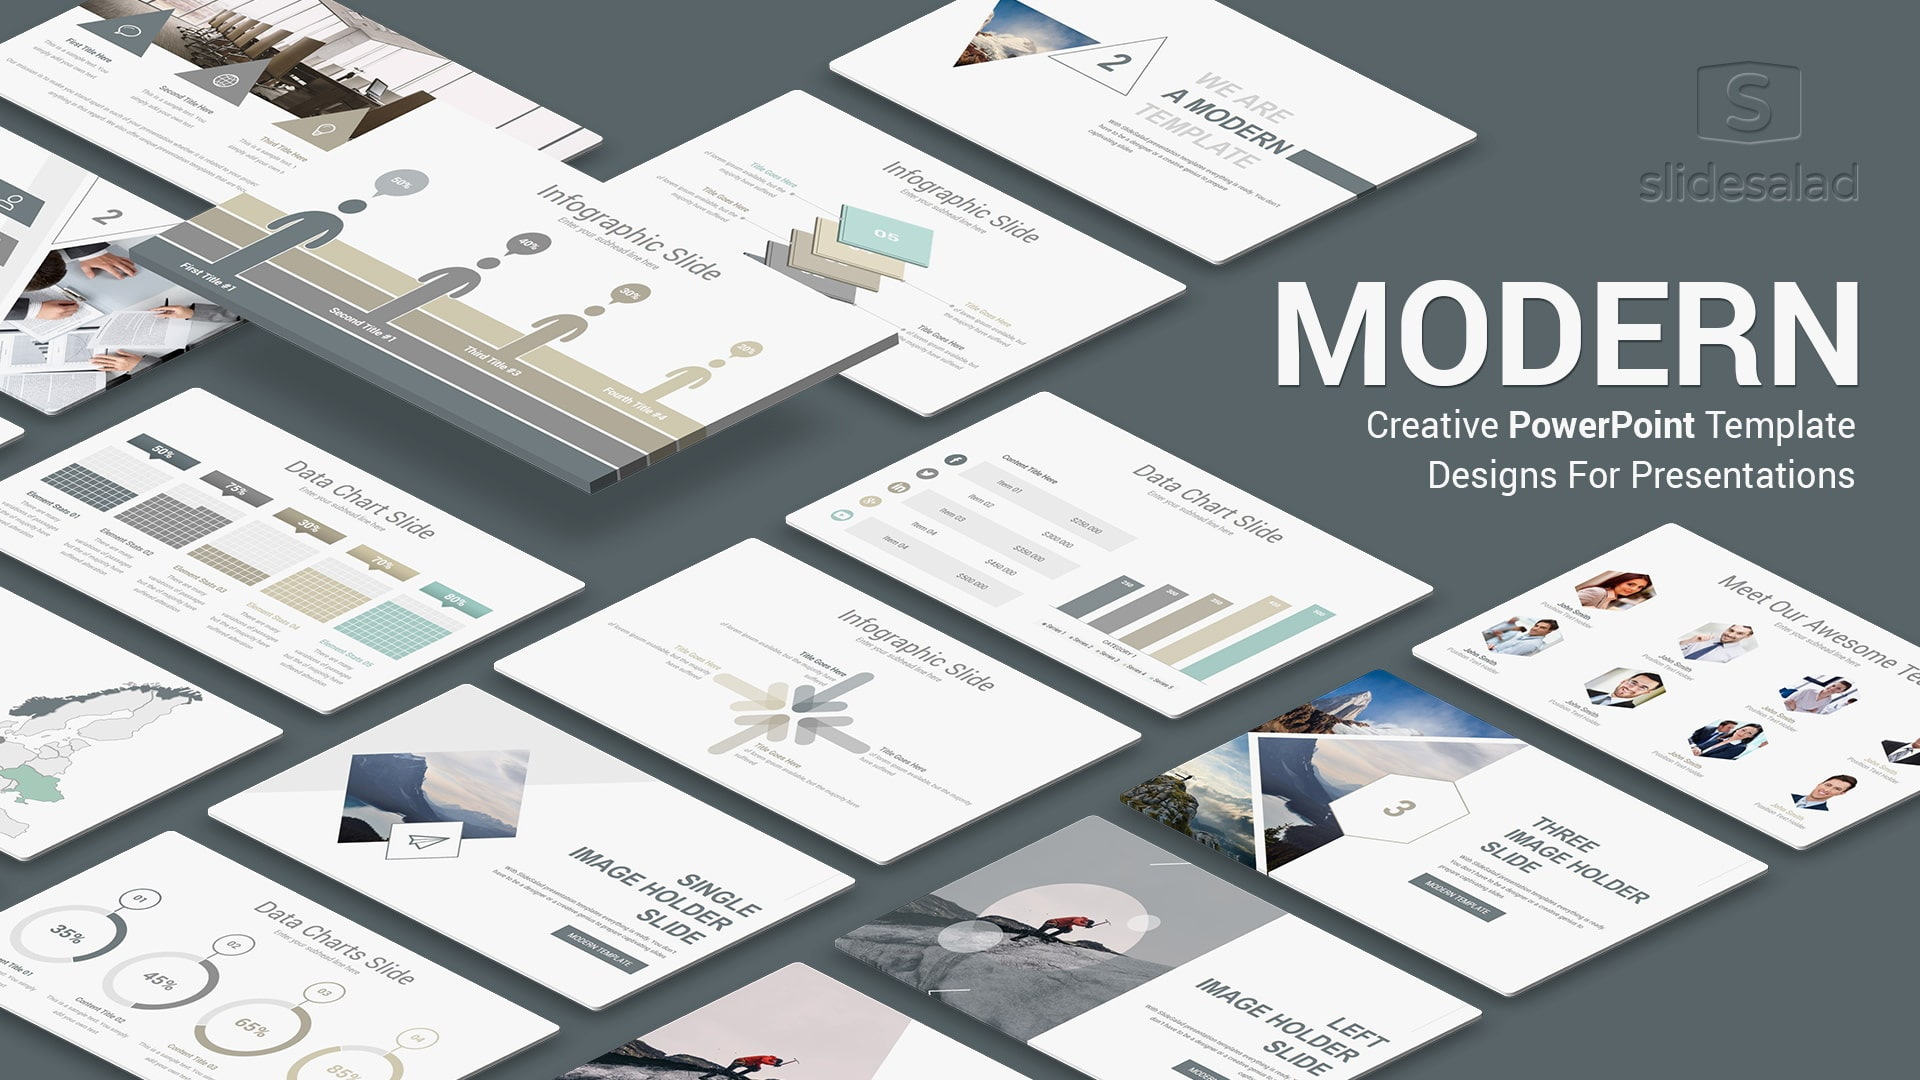 Modern PowerPoint Template For Presentation – PowerPoint Animation Templates Set